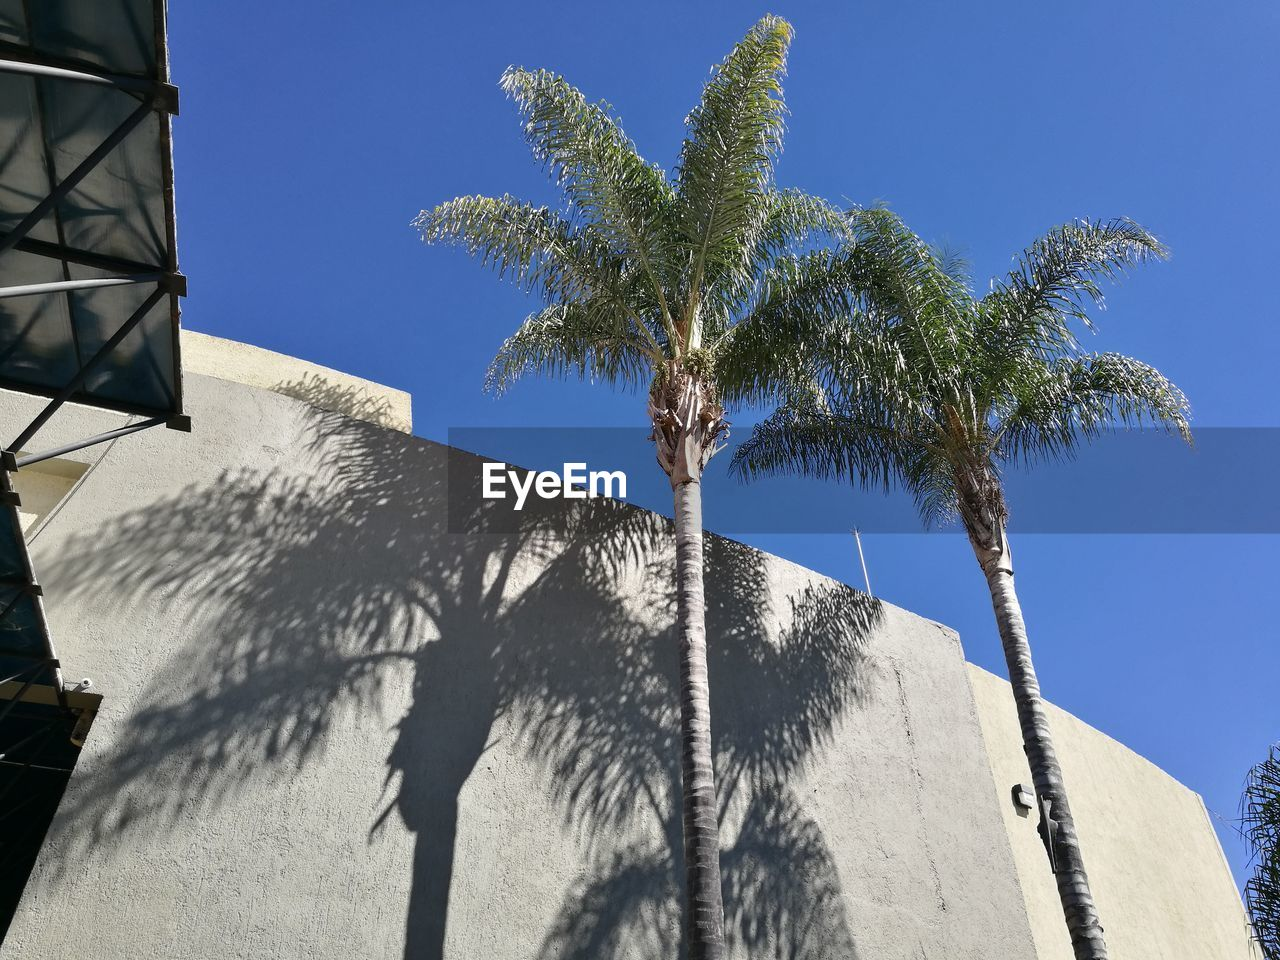 palm tree, tree, low angle view, clear sky, outdoors, day, built structure, building exterior, sunlight, architecture, no people, sky, blue, growth, shadow, nature, close-up